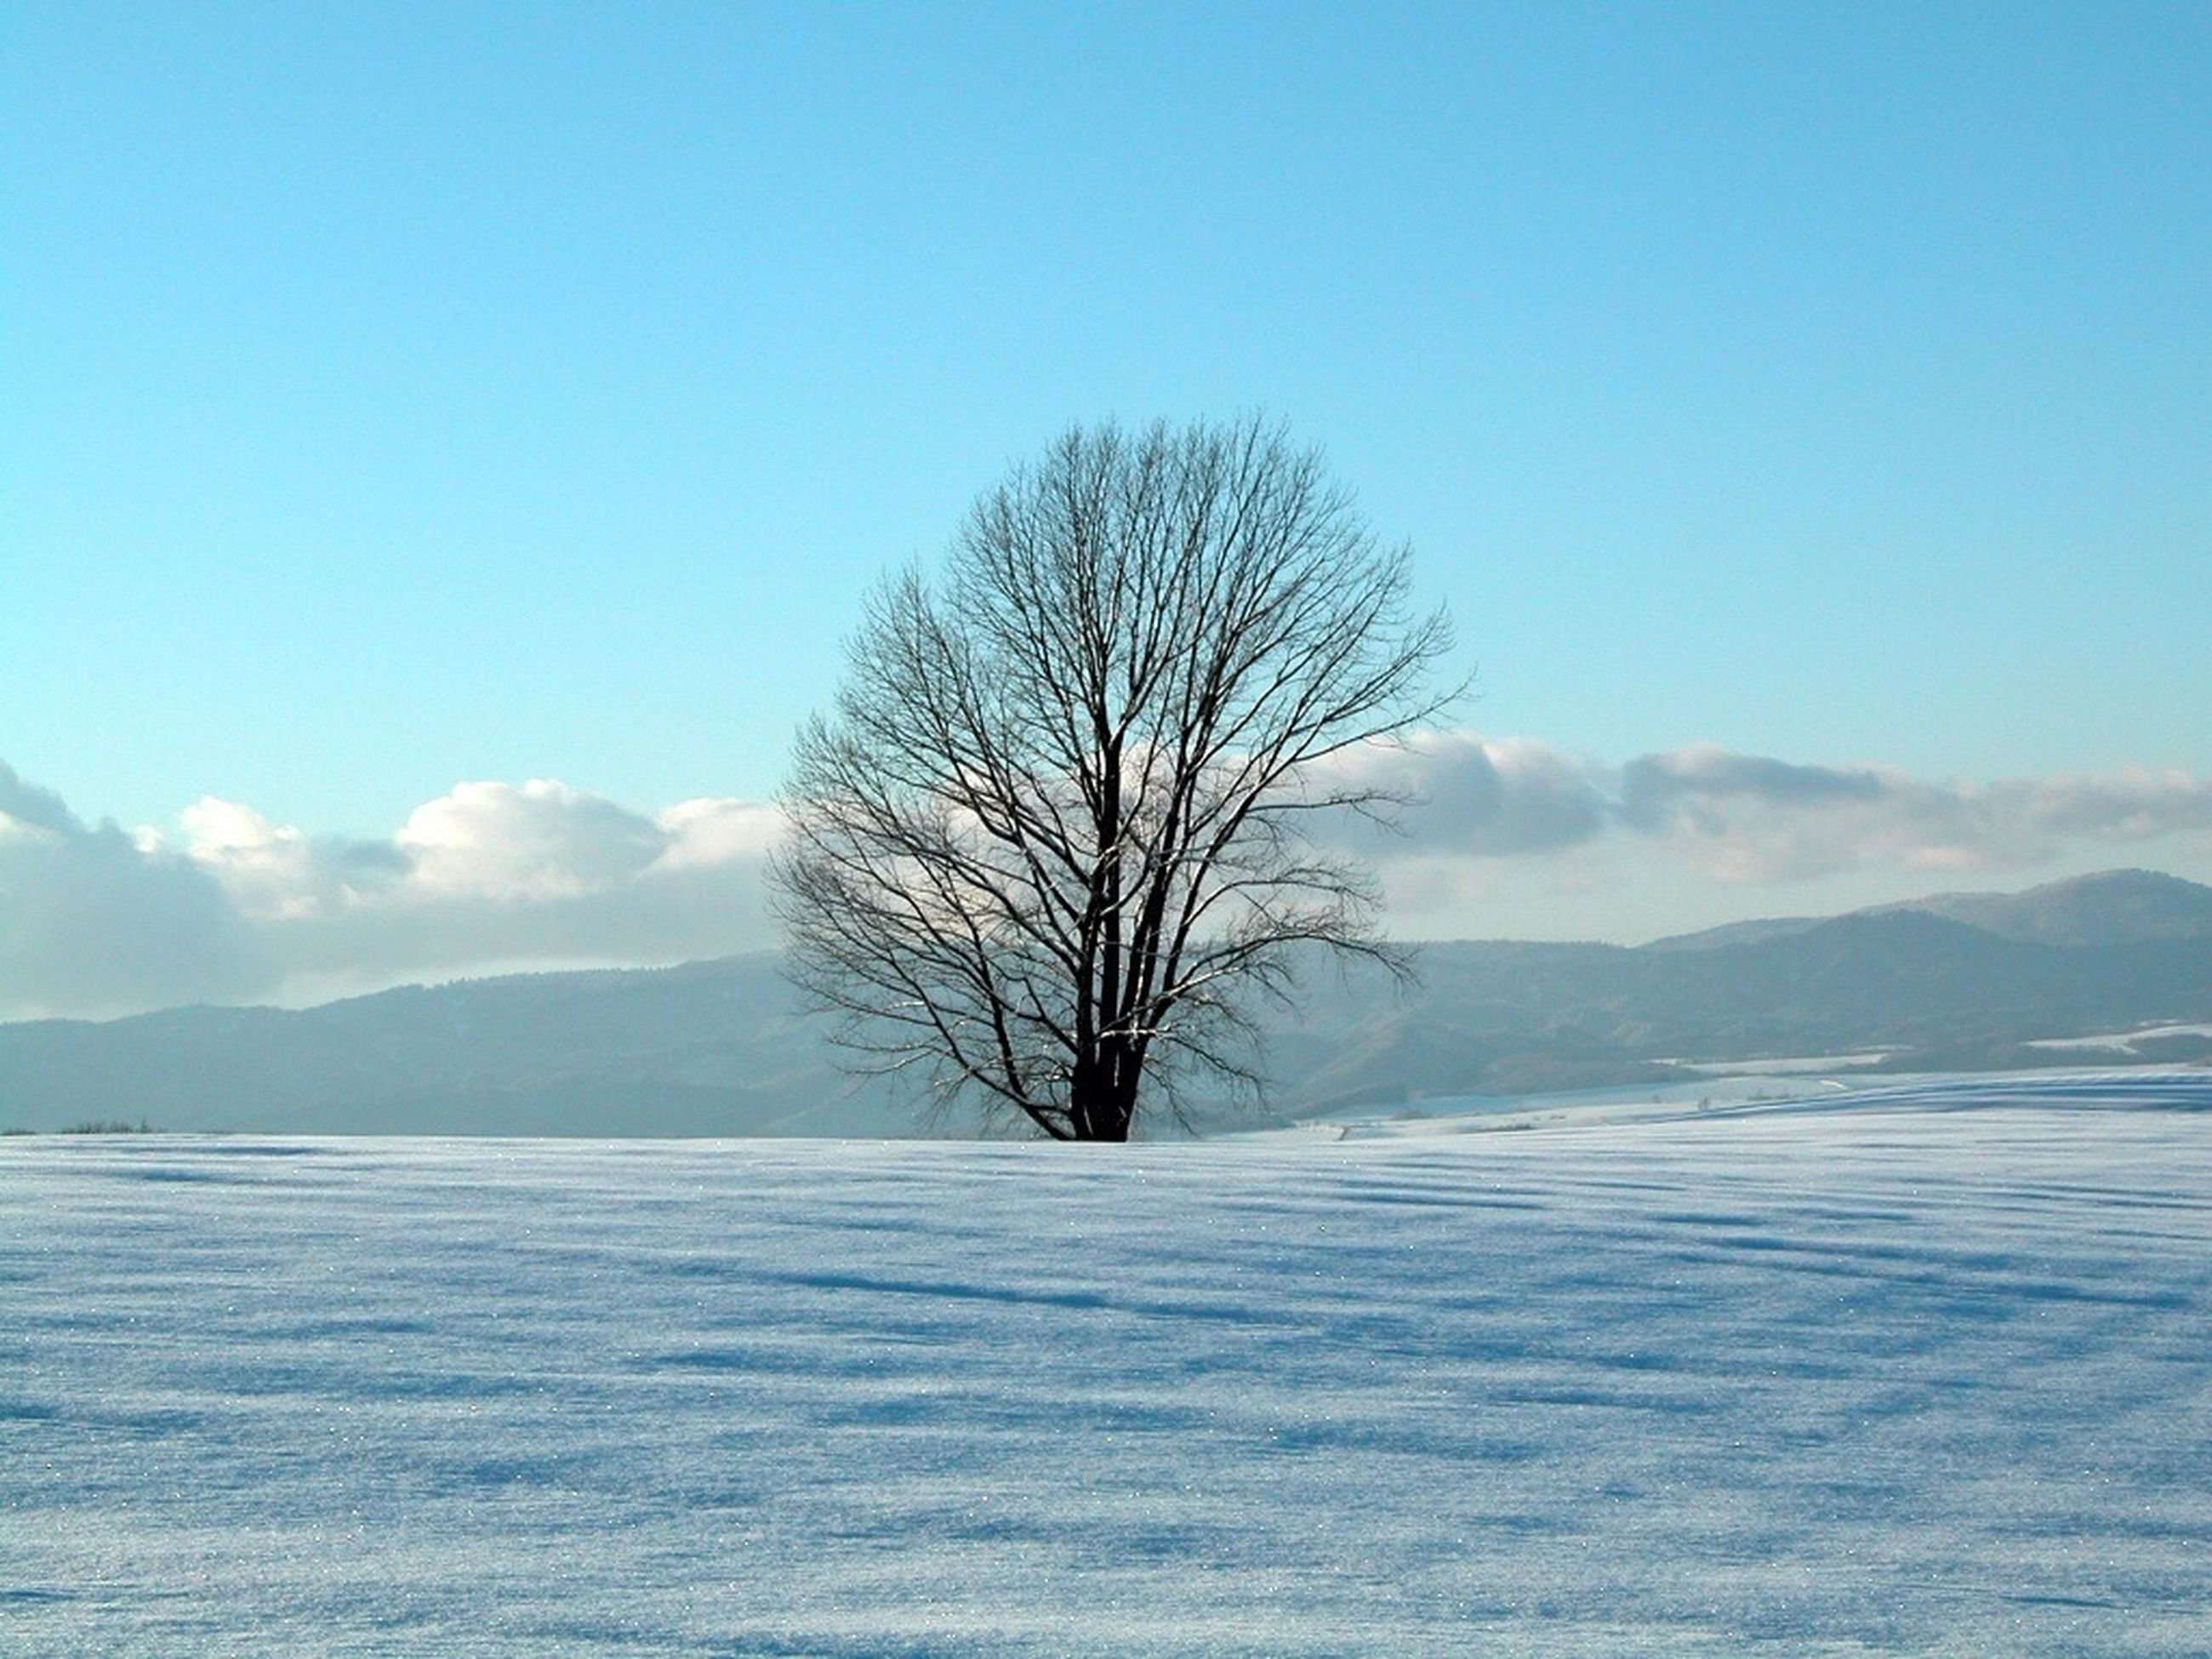 bare tree, tranquil scene, tranquility, snow, winter, cold temperature, scenics, beauty in nature, mountain, tree, nature, sky, landscape, blue, water, mountain range, season, clear sky, lake, branch